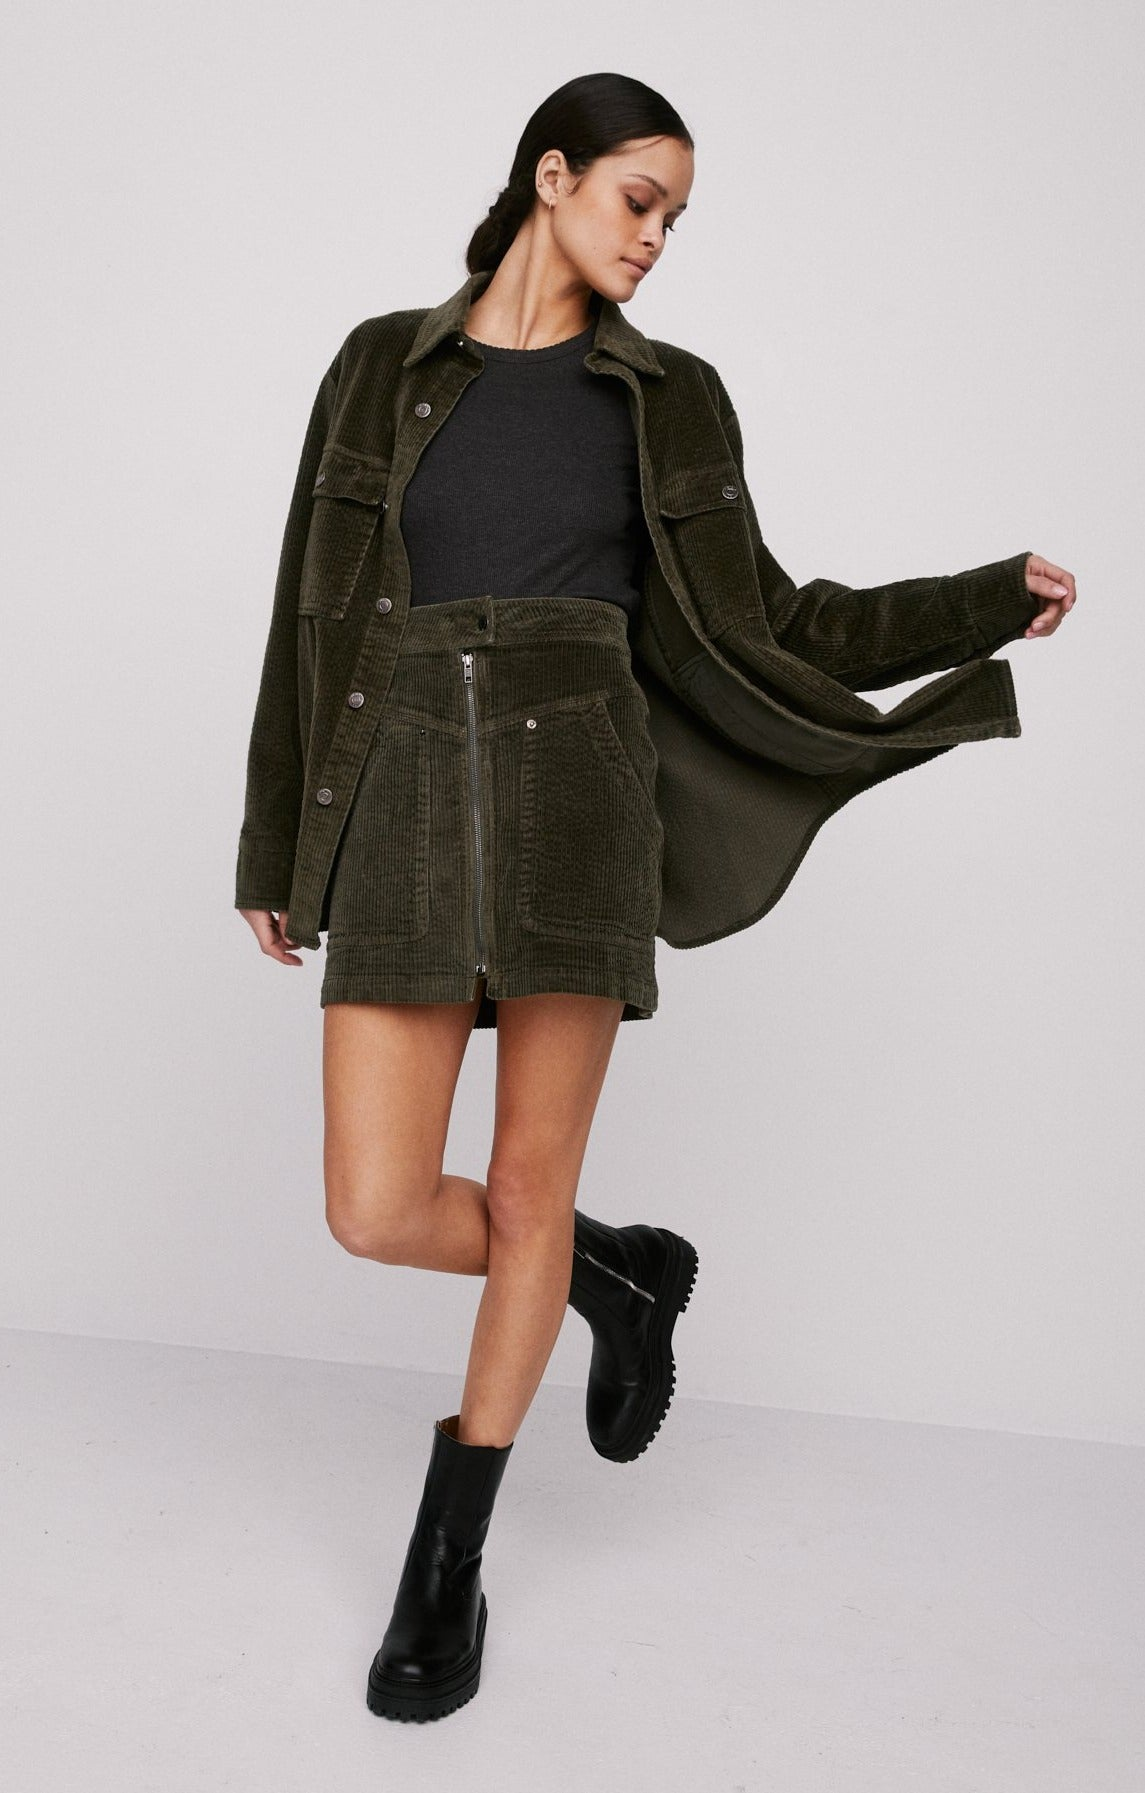 Roxy Cord Skirt - Blackened Olive